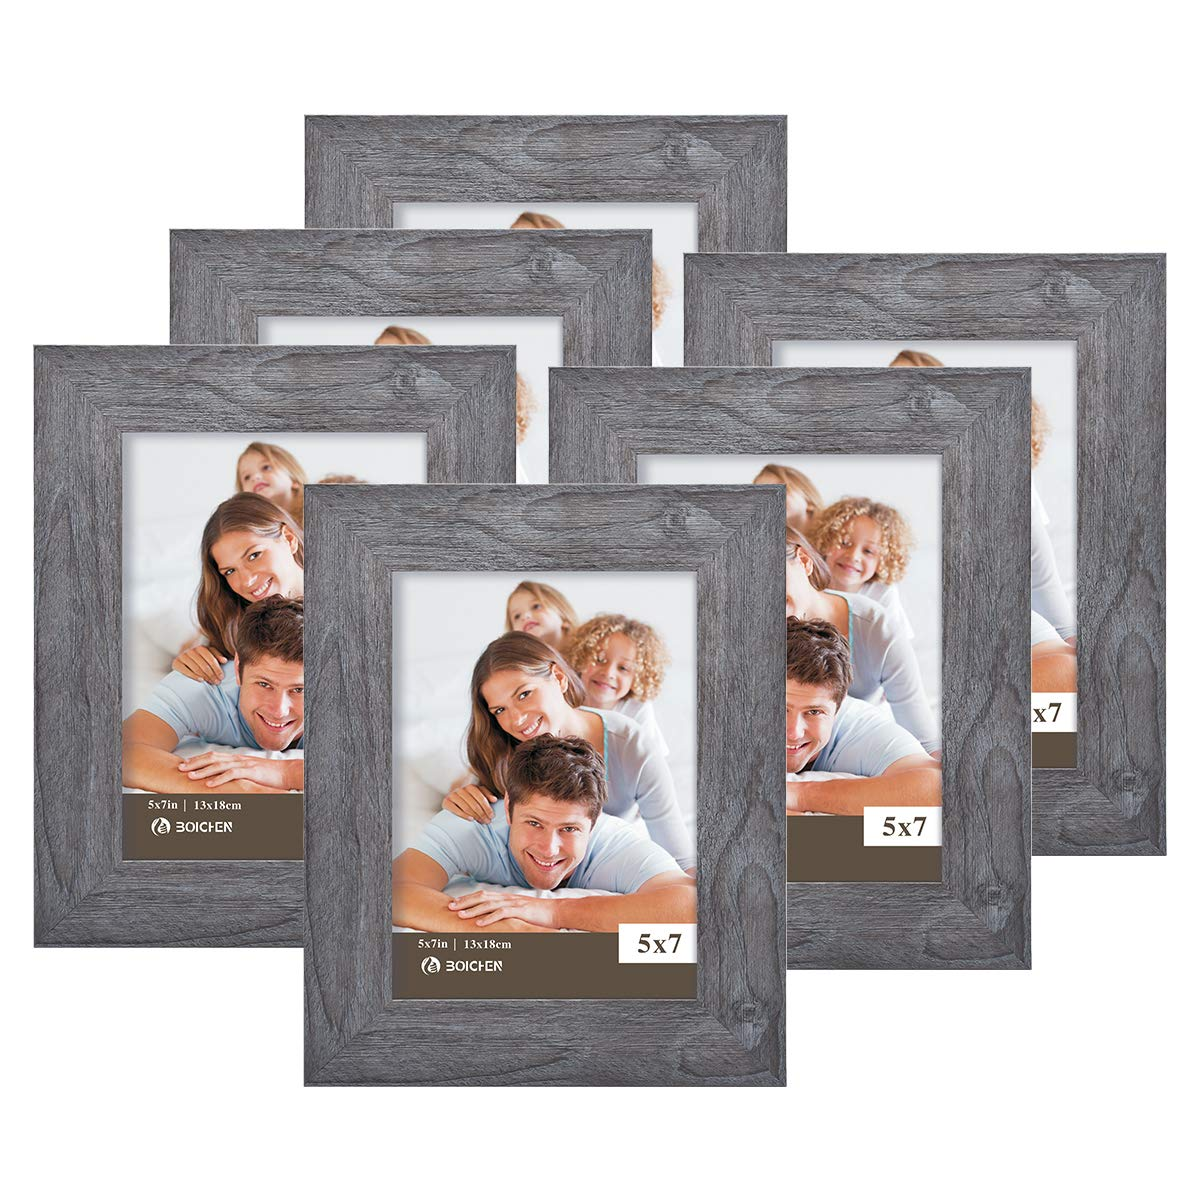 Boichen 5X7 Picture Frames 6 Pack Rustic Style Wood Pattern High Definition Glass for Tabletop Display and Wall mounting Photo Frame by Boichen